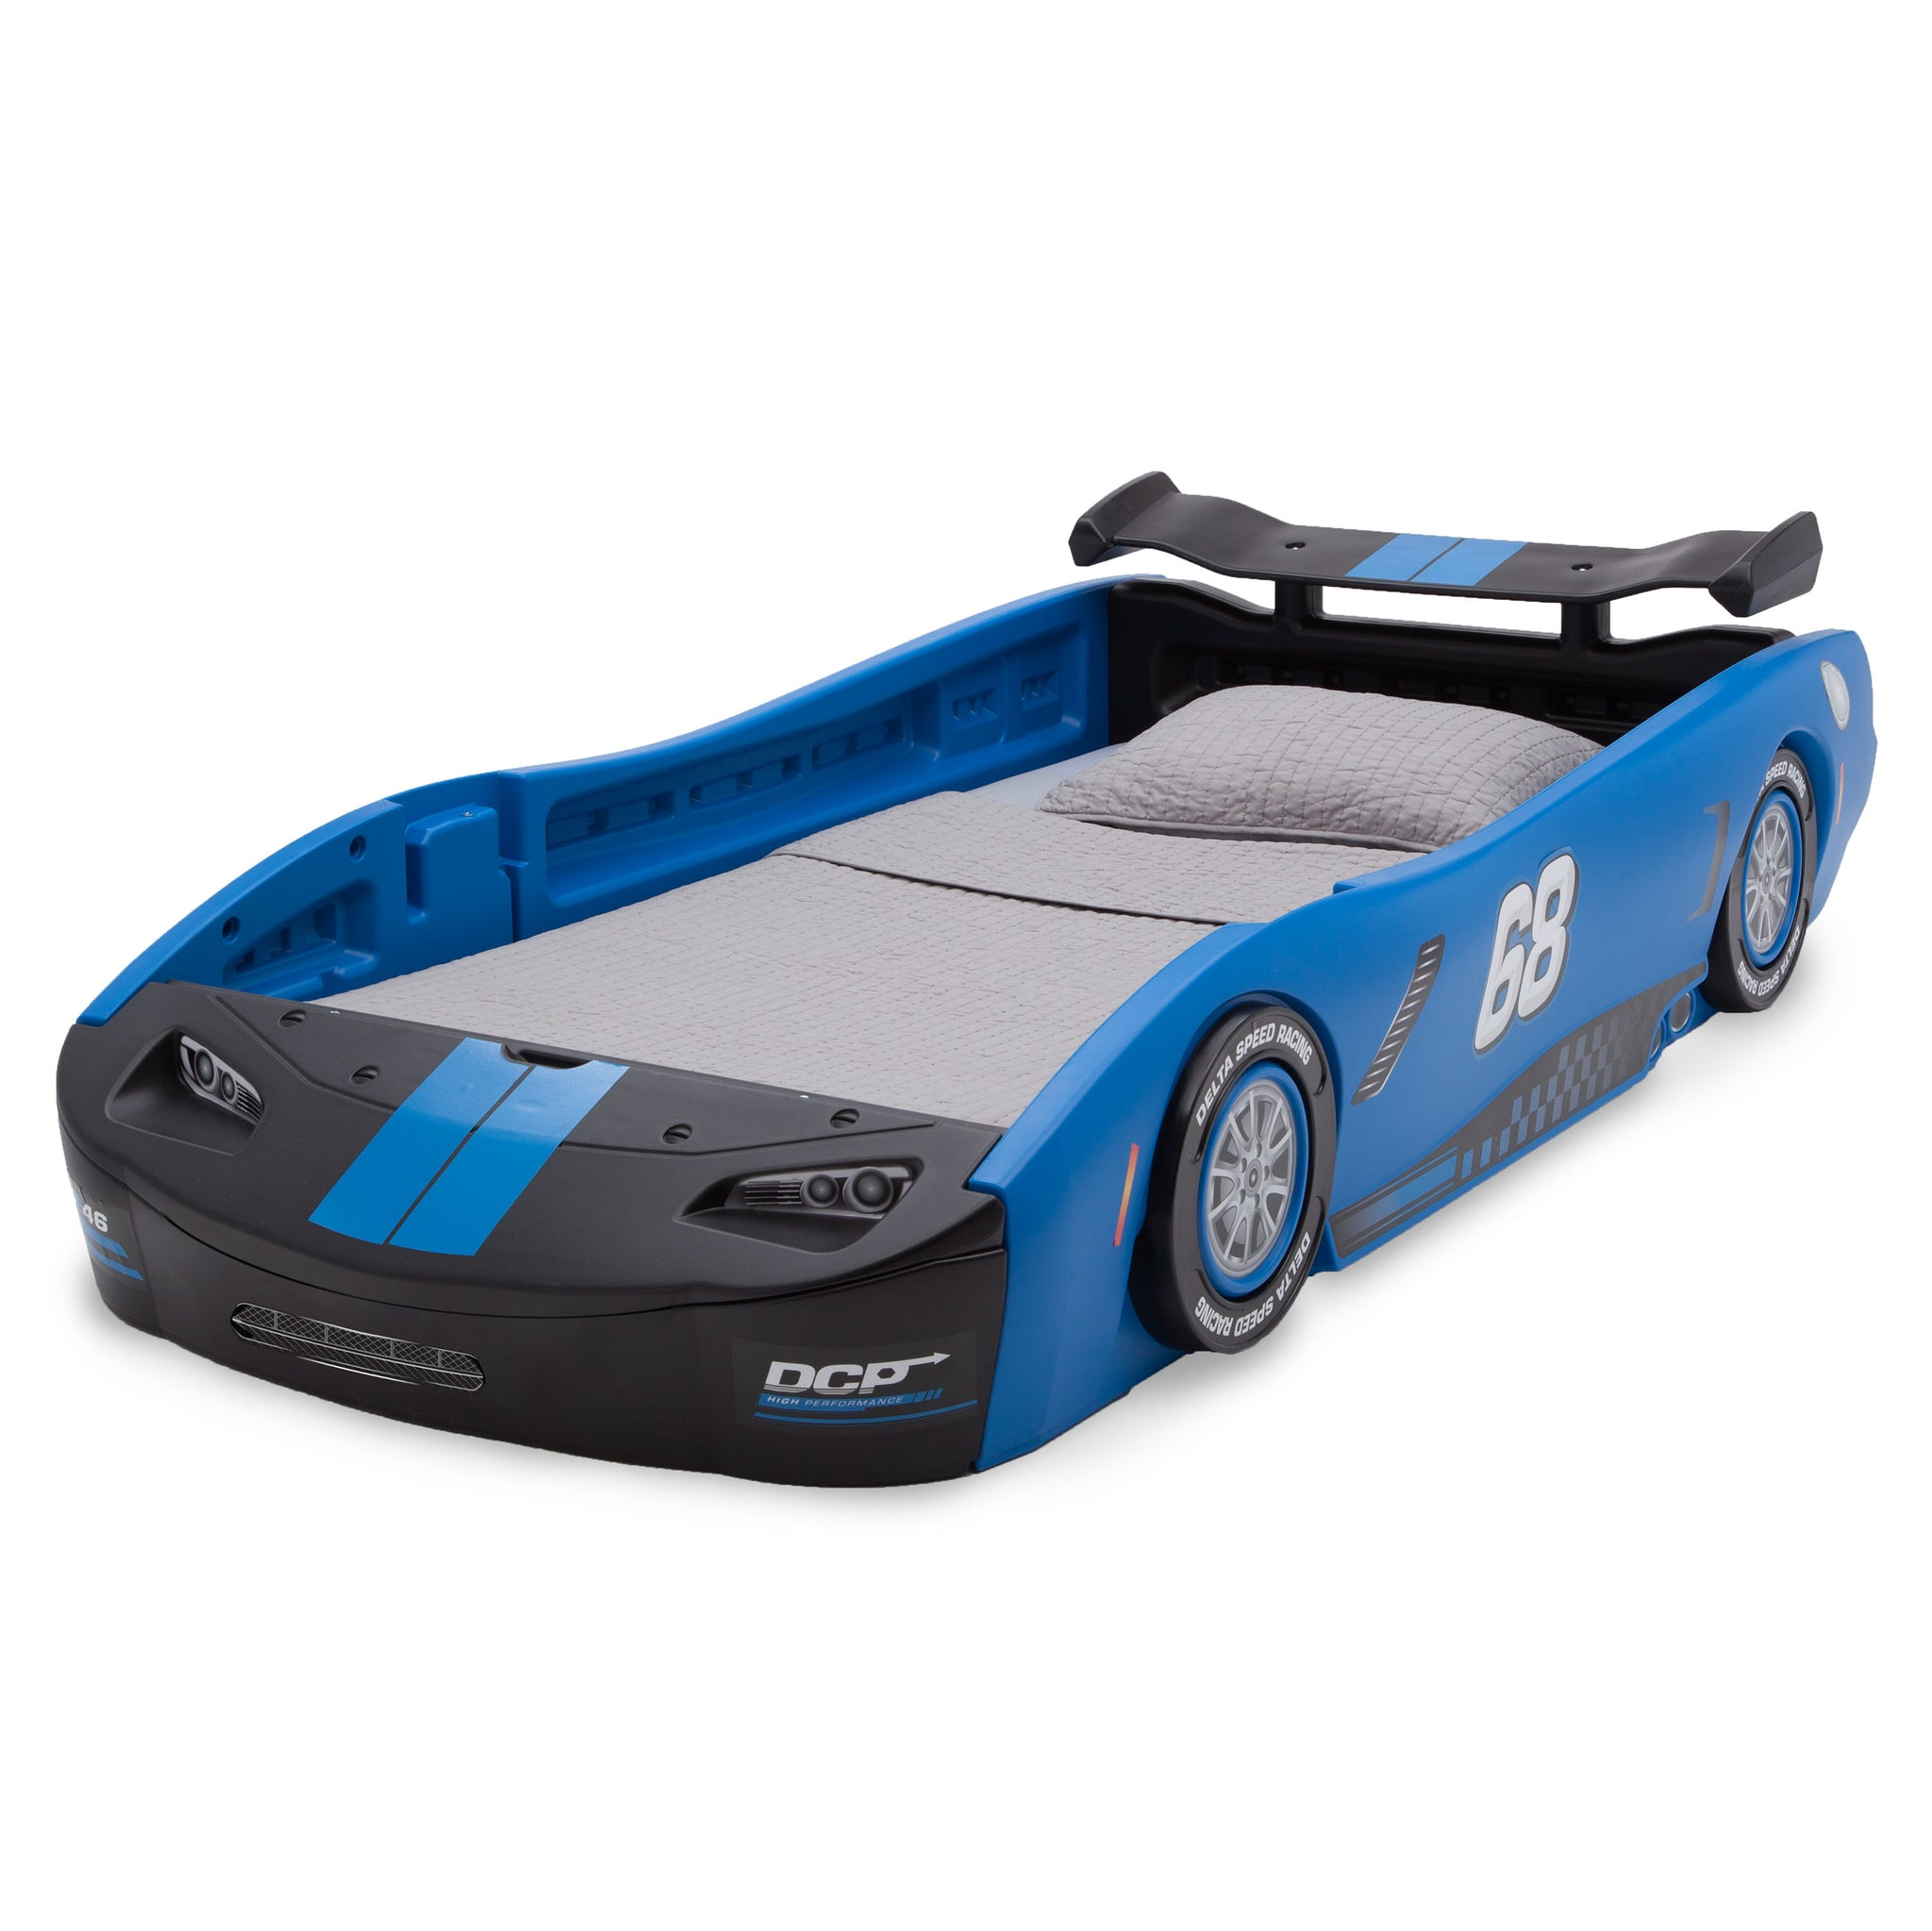 Delta Children Turbo Race Car Twin Bed, Blue and Black (485), Left View a3a